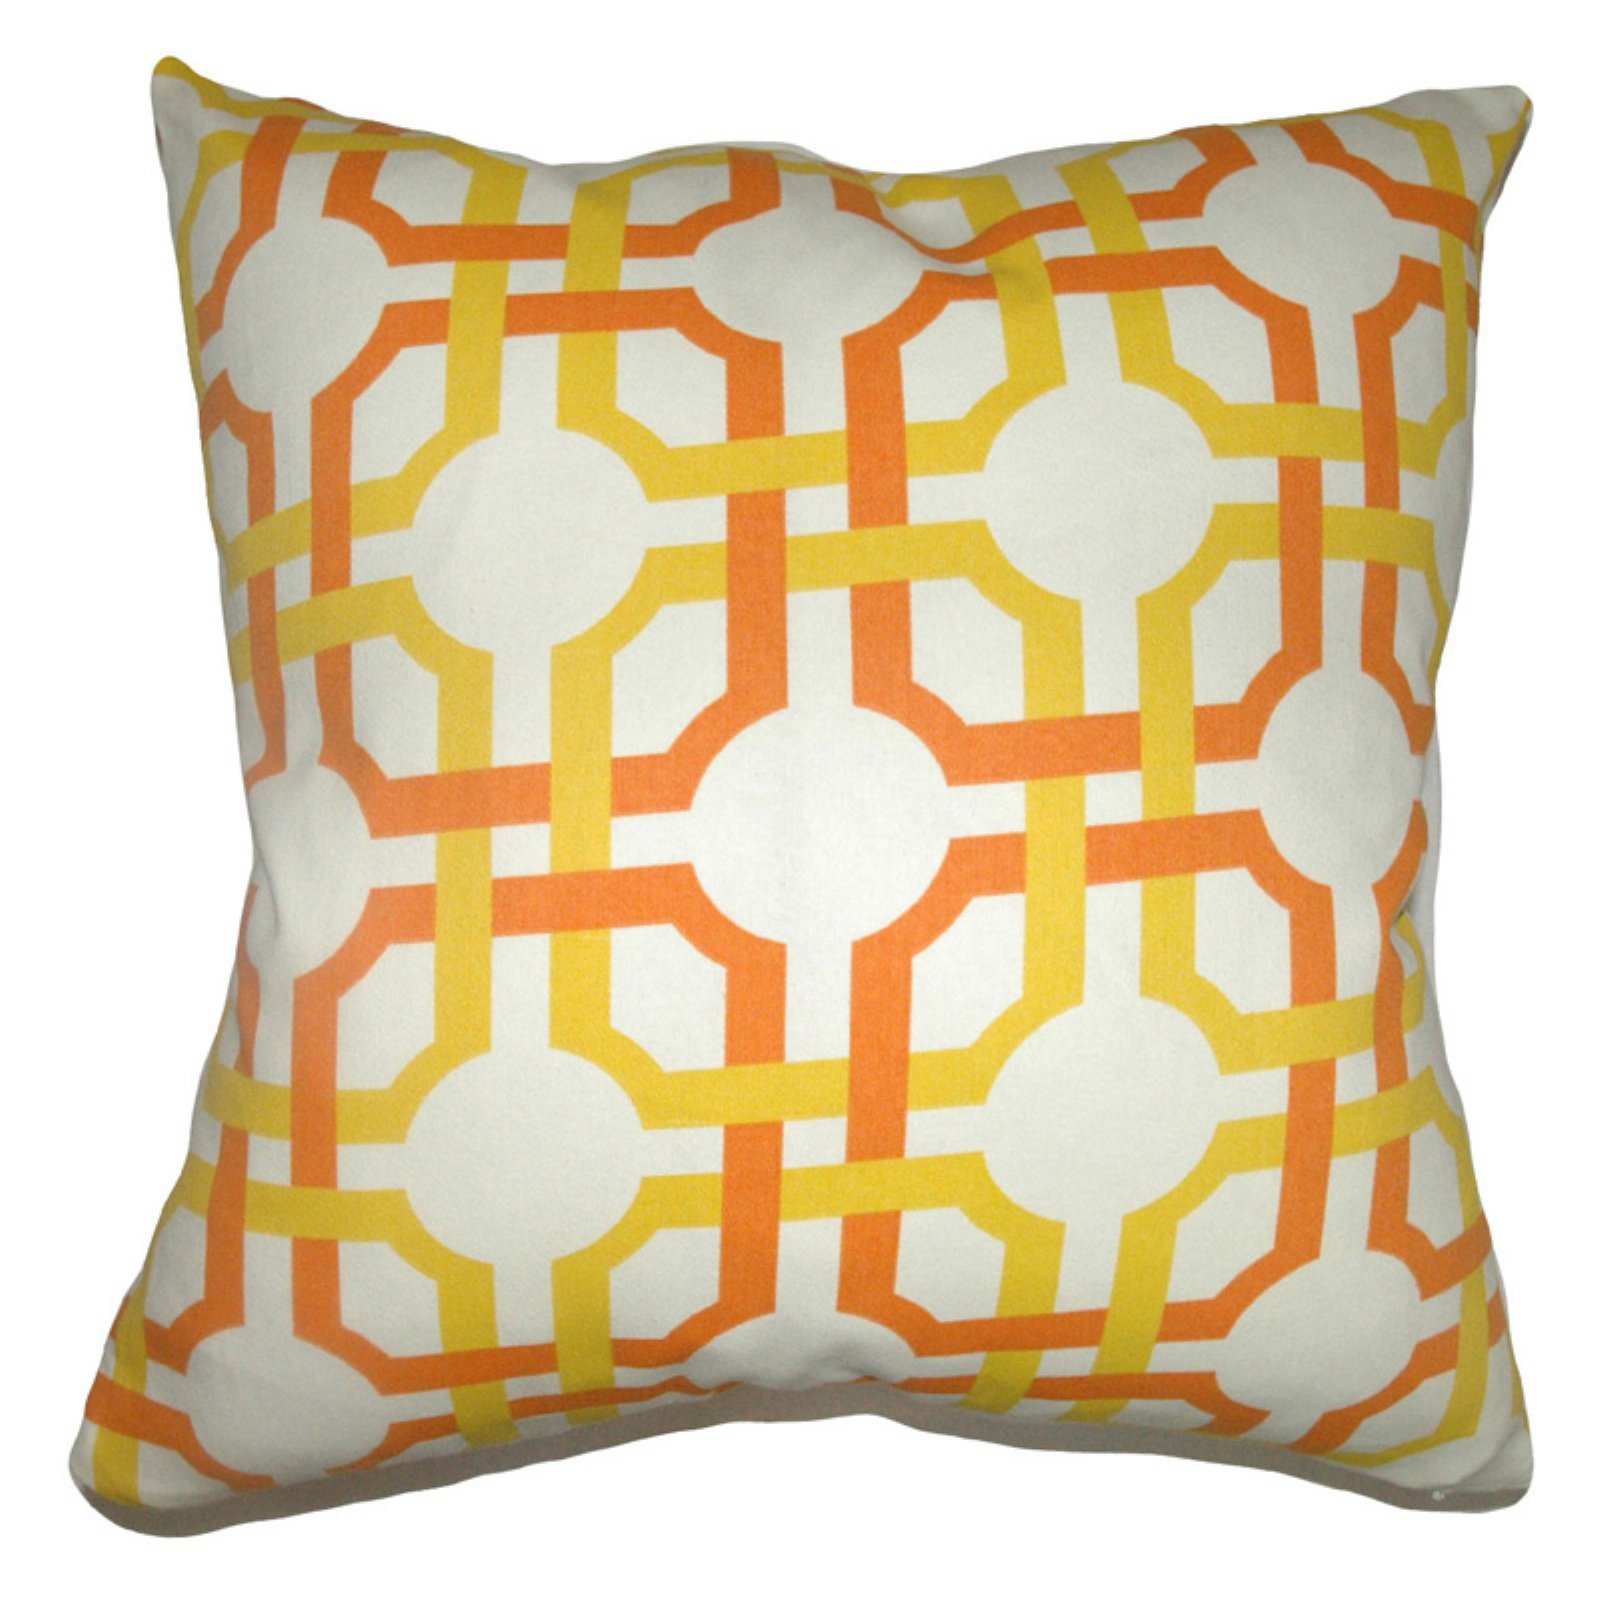 The Pillow Collection Aebba Tile Pillow